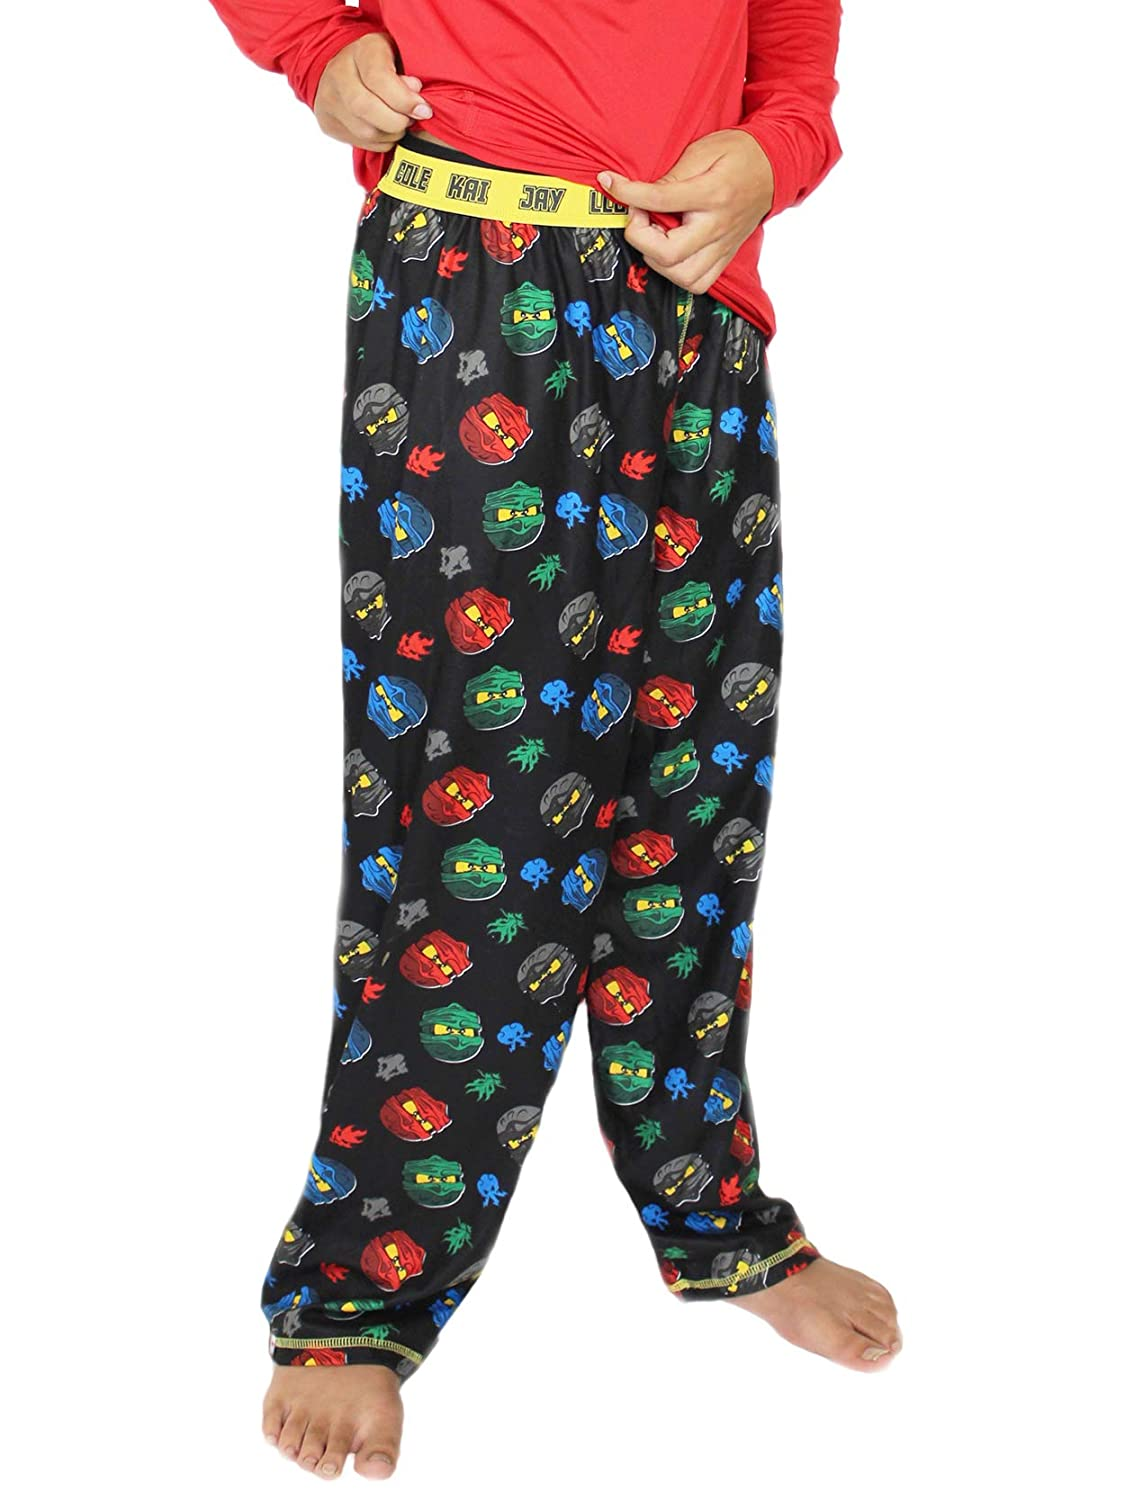 LEGO Ninjago Boys Flannel Lounge Pajama Pants (Little Kid/Big Kid)